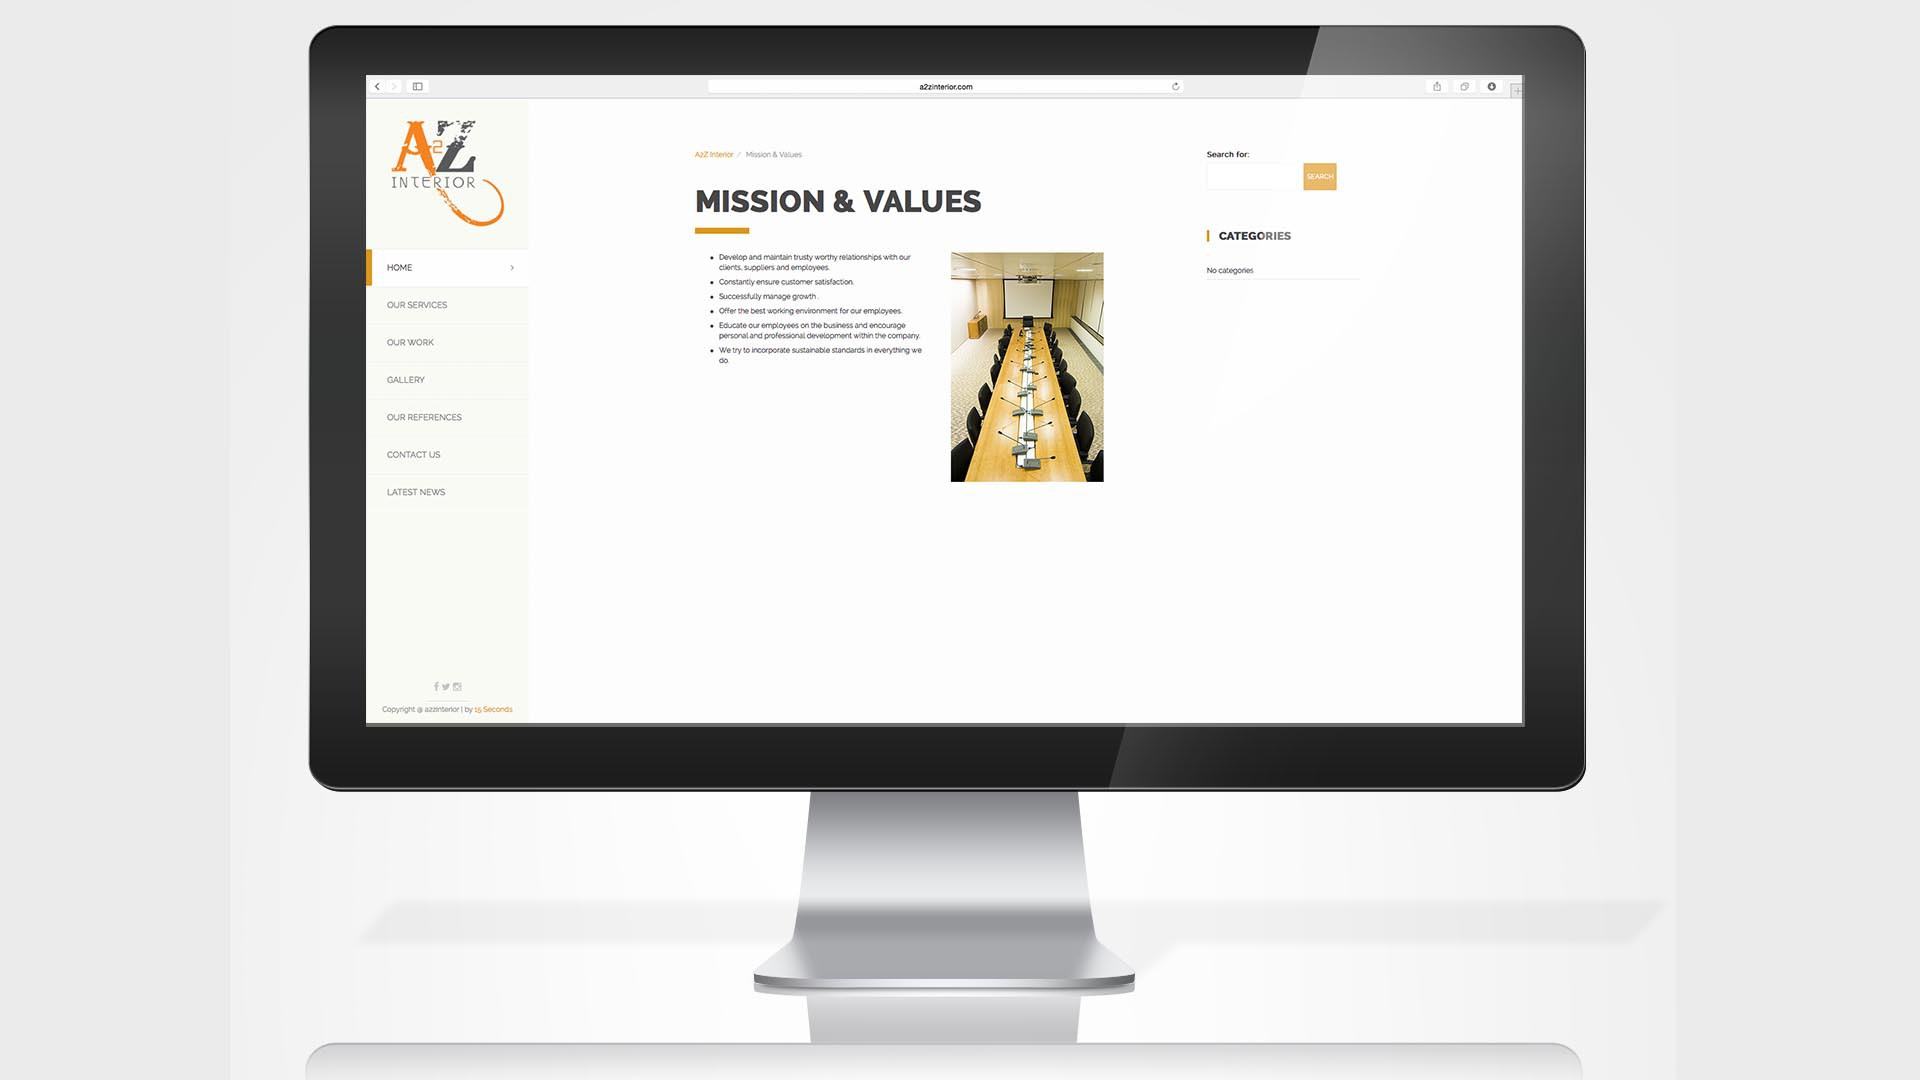 a2z-interiors-website-mission